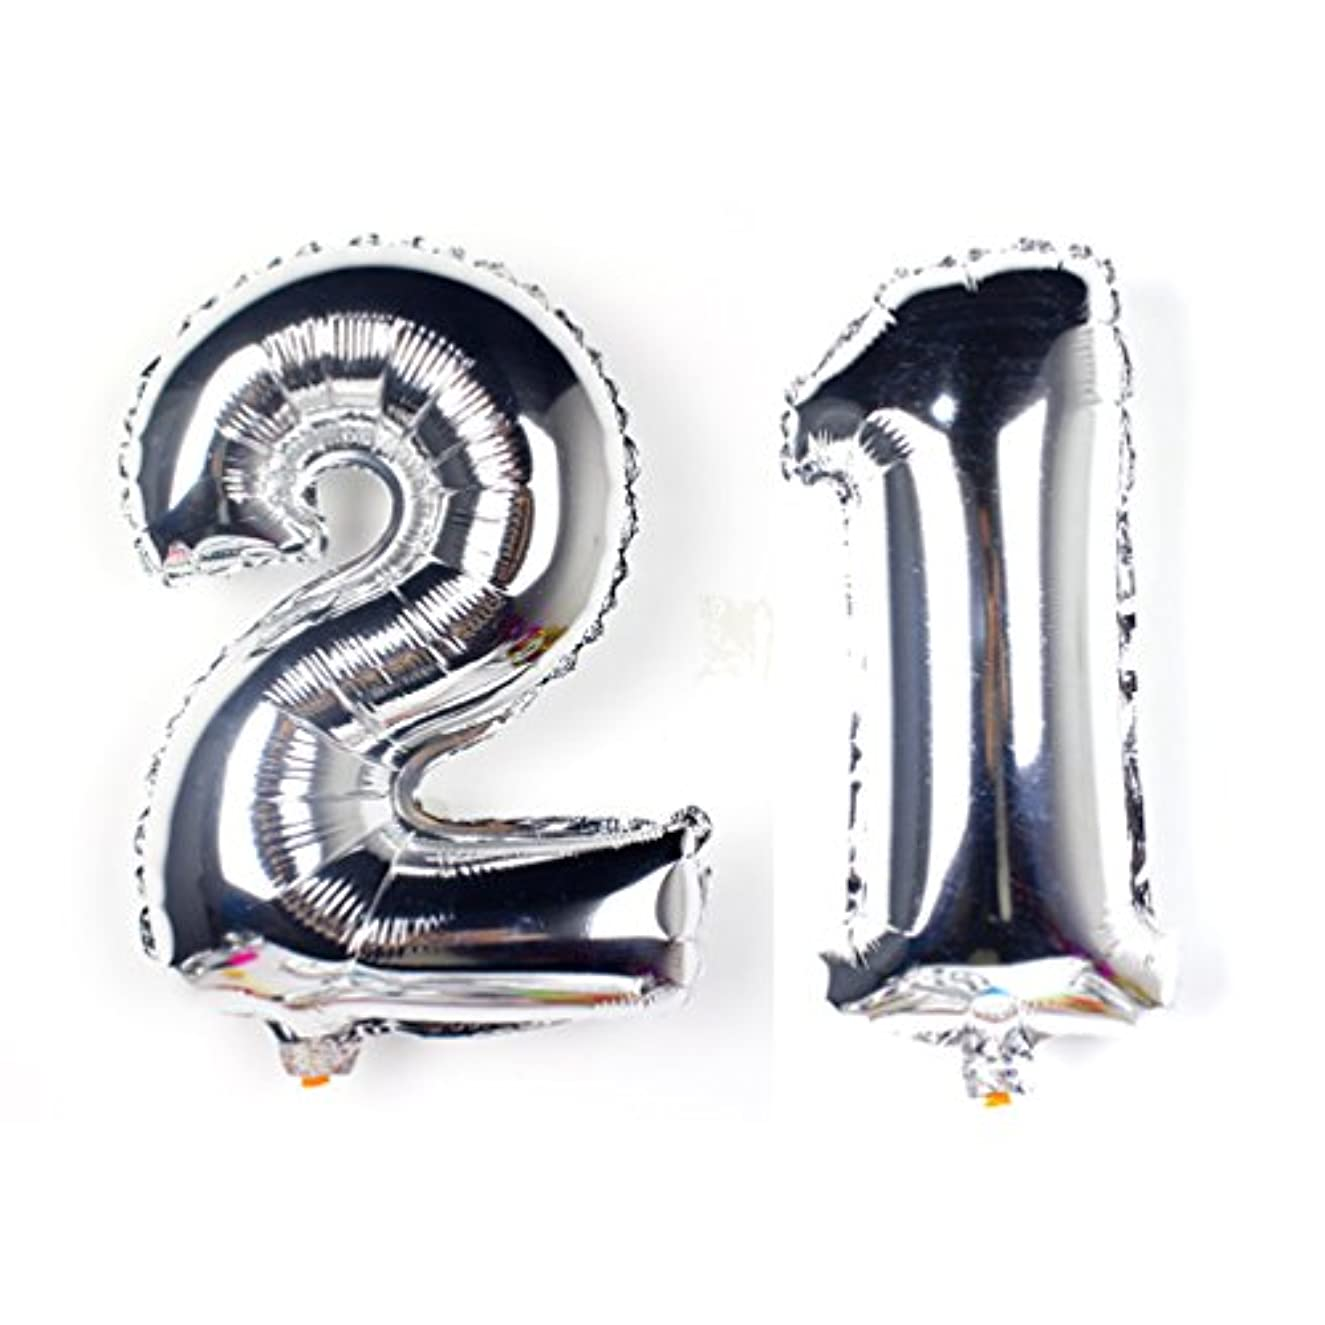 KEYYOOMY 40 in Number 21 Balloon Kit Silver Gaint Jumbo Foil Mylar Balloons for 21 Birthday Party Adult Ceremony Anniversary Celebrate Parties Decorations (a Number 1 Balloon and 1 Number 2 Balloon)